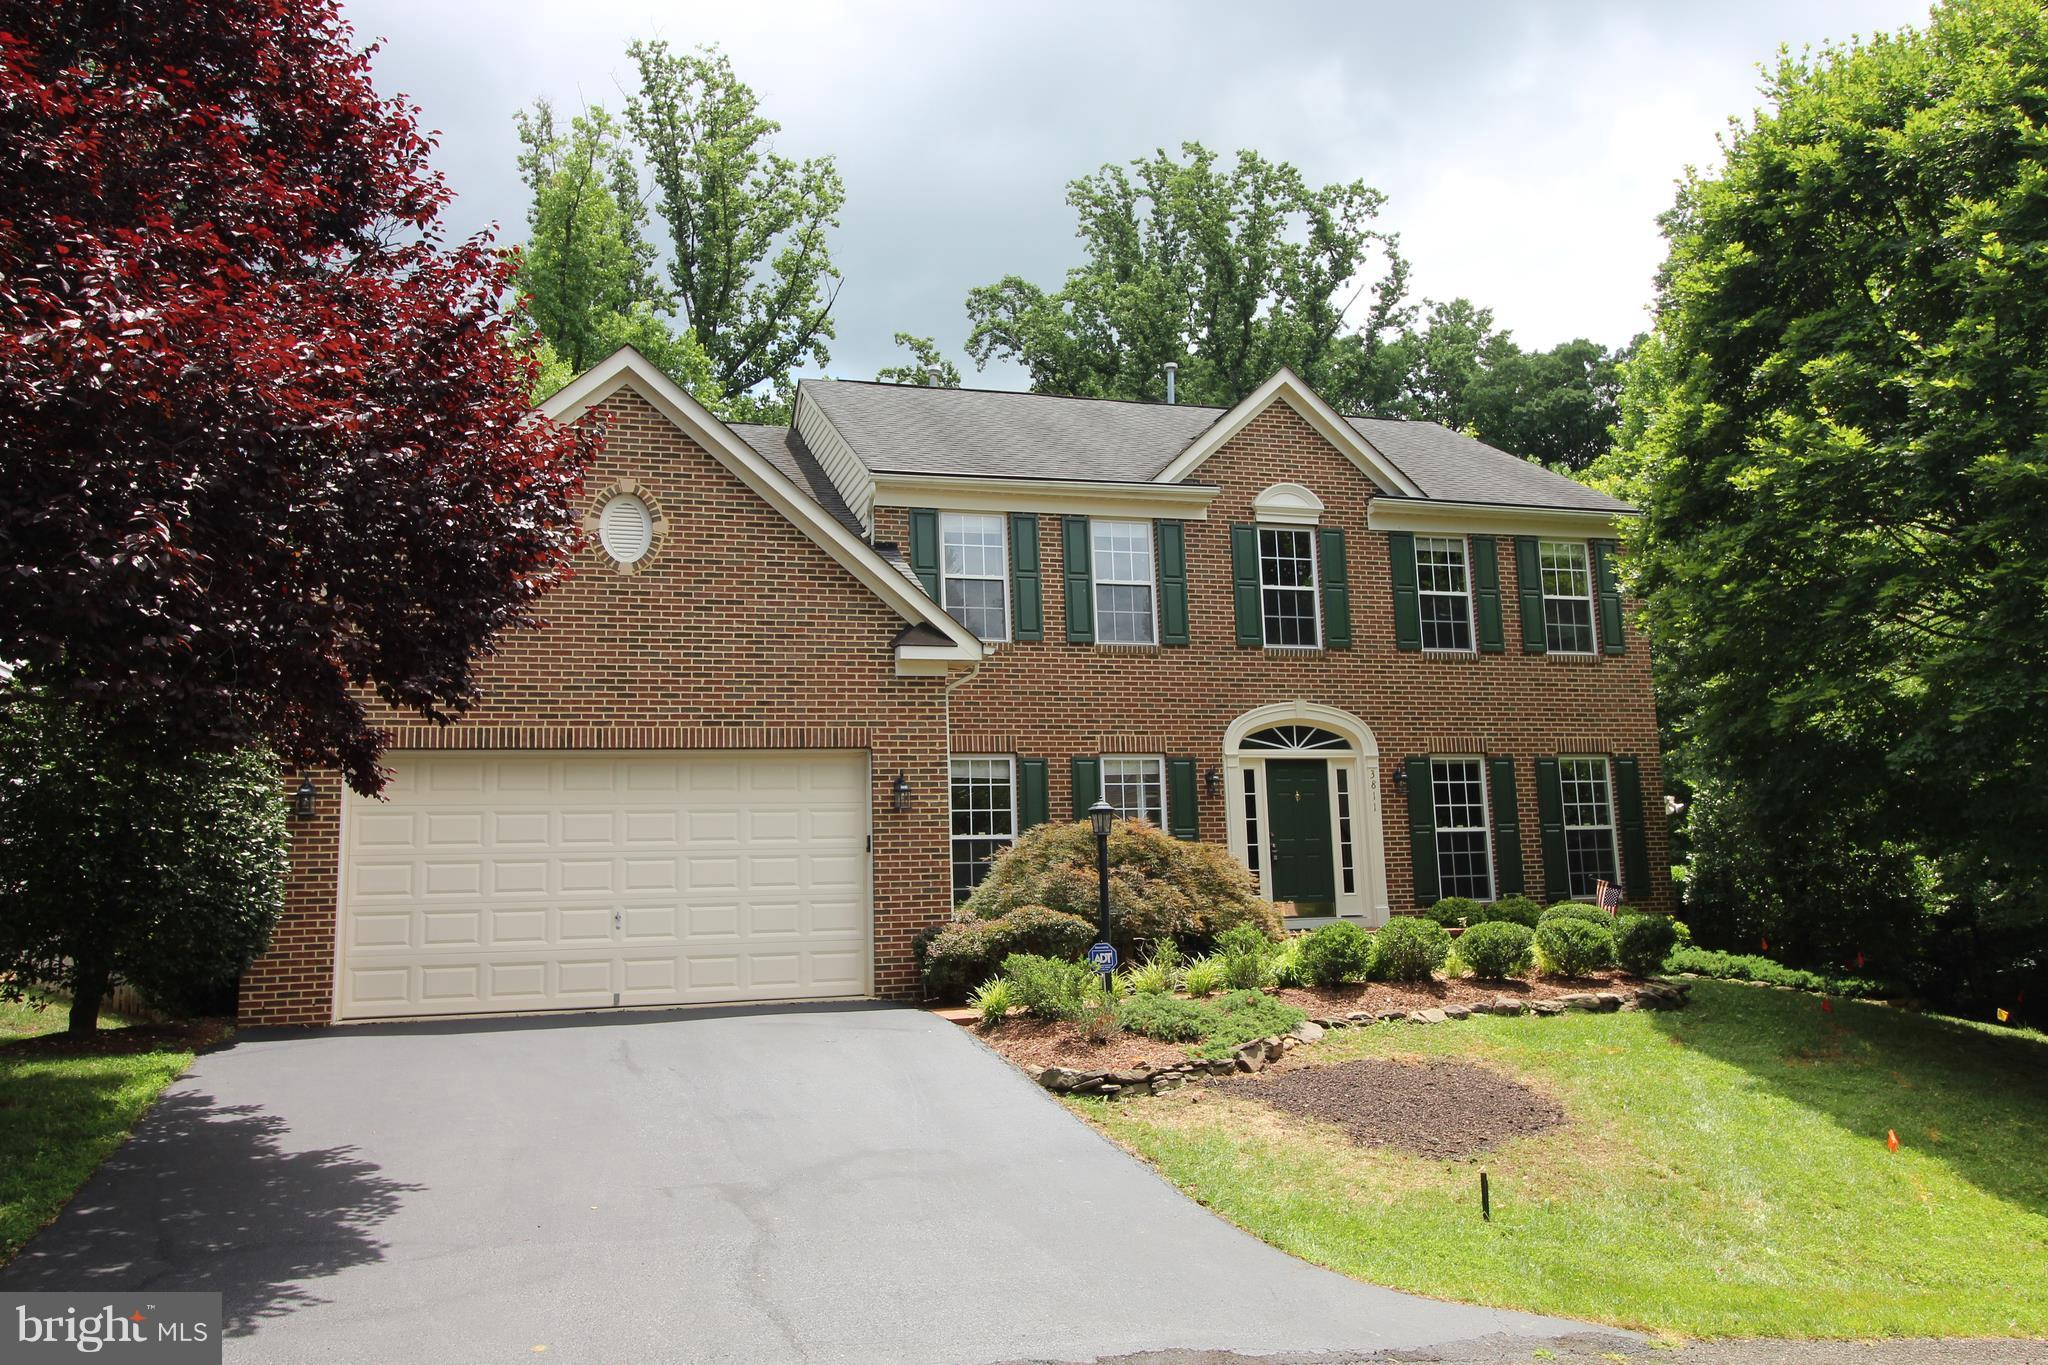 Close in Private getaway near Historic Mount Vernon!  Gorgeous 5 BR/3.5 BA Colonial on 1/3+ acre features Beautiful Hardwoods, Gourmet Kitchen w/oversized island adjoins the Sun Room & spacious Family Room w/Stone raised hearth FP on the main lvl.  Upper lvl features a Luxurious Master Suite & 3 addt~l spacious BR~s/FBA.  The W/O lower lvl features a BR/FBA, Game Room, Rec Room & loads of Storage.